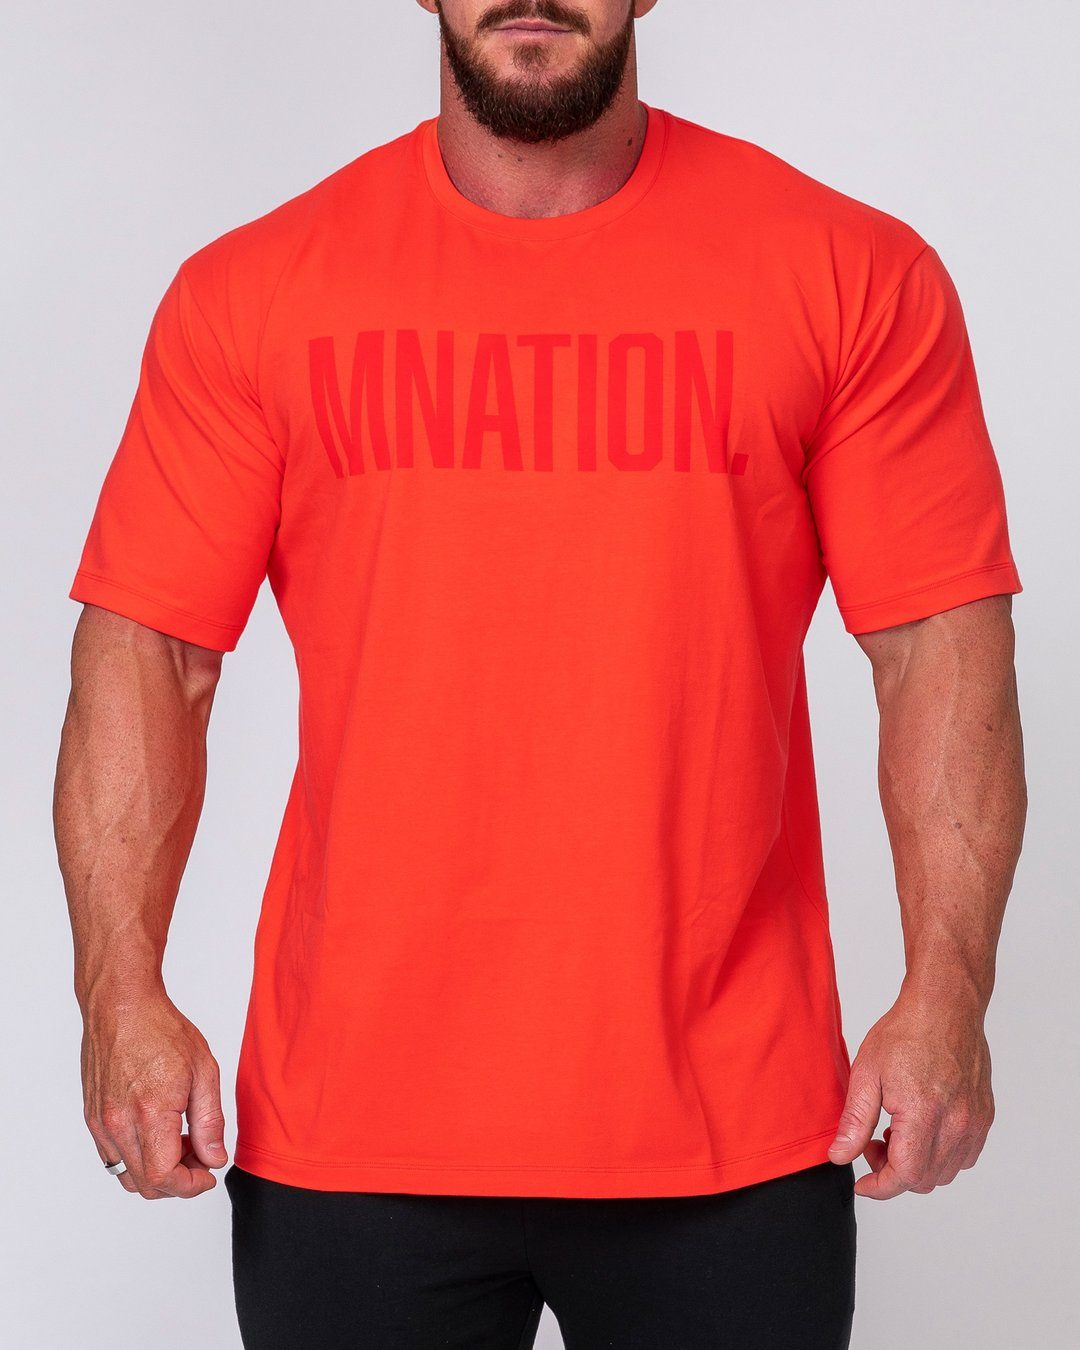 Muscle Nation Mens Oversized Tonal Tee - Infrared